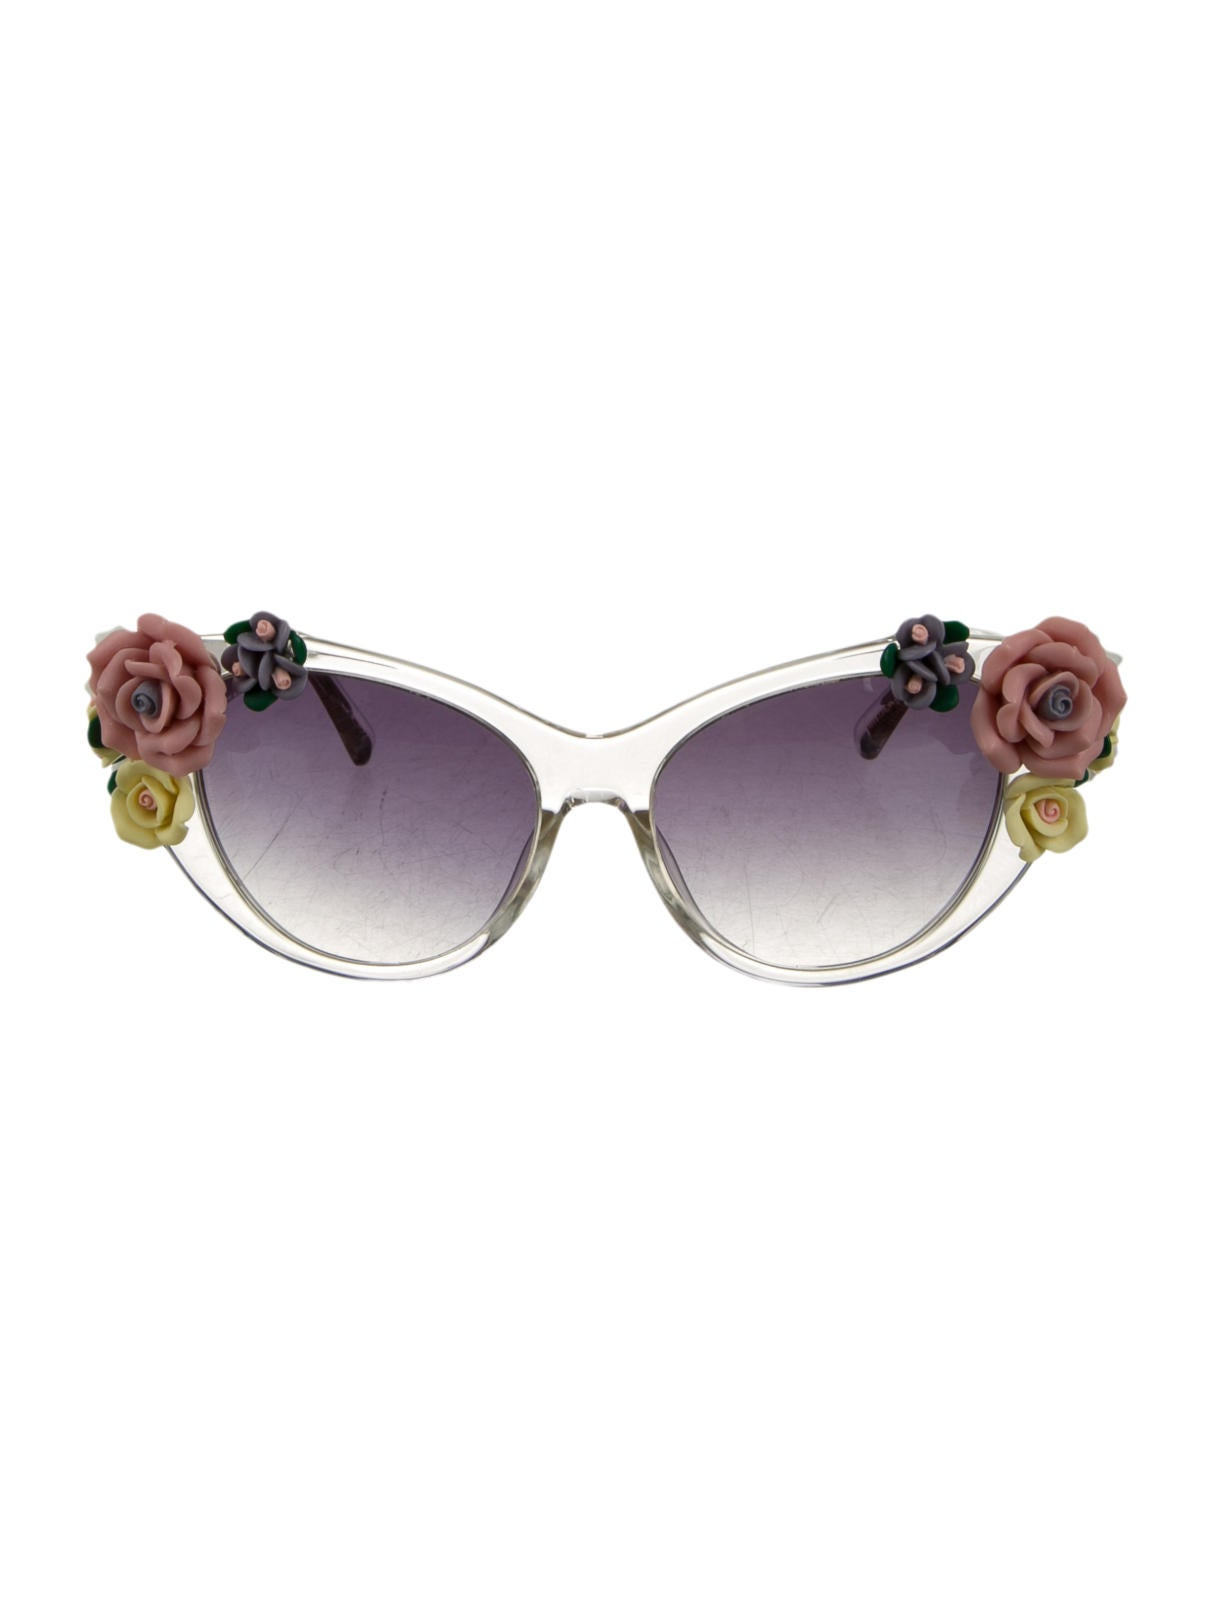 9394c4d19b Dolce And Gabbana Garden Flowers Sunglasses « Heritage Malta